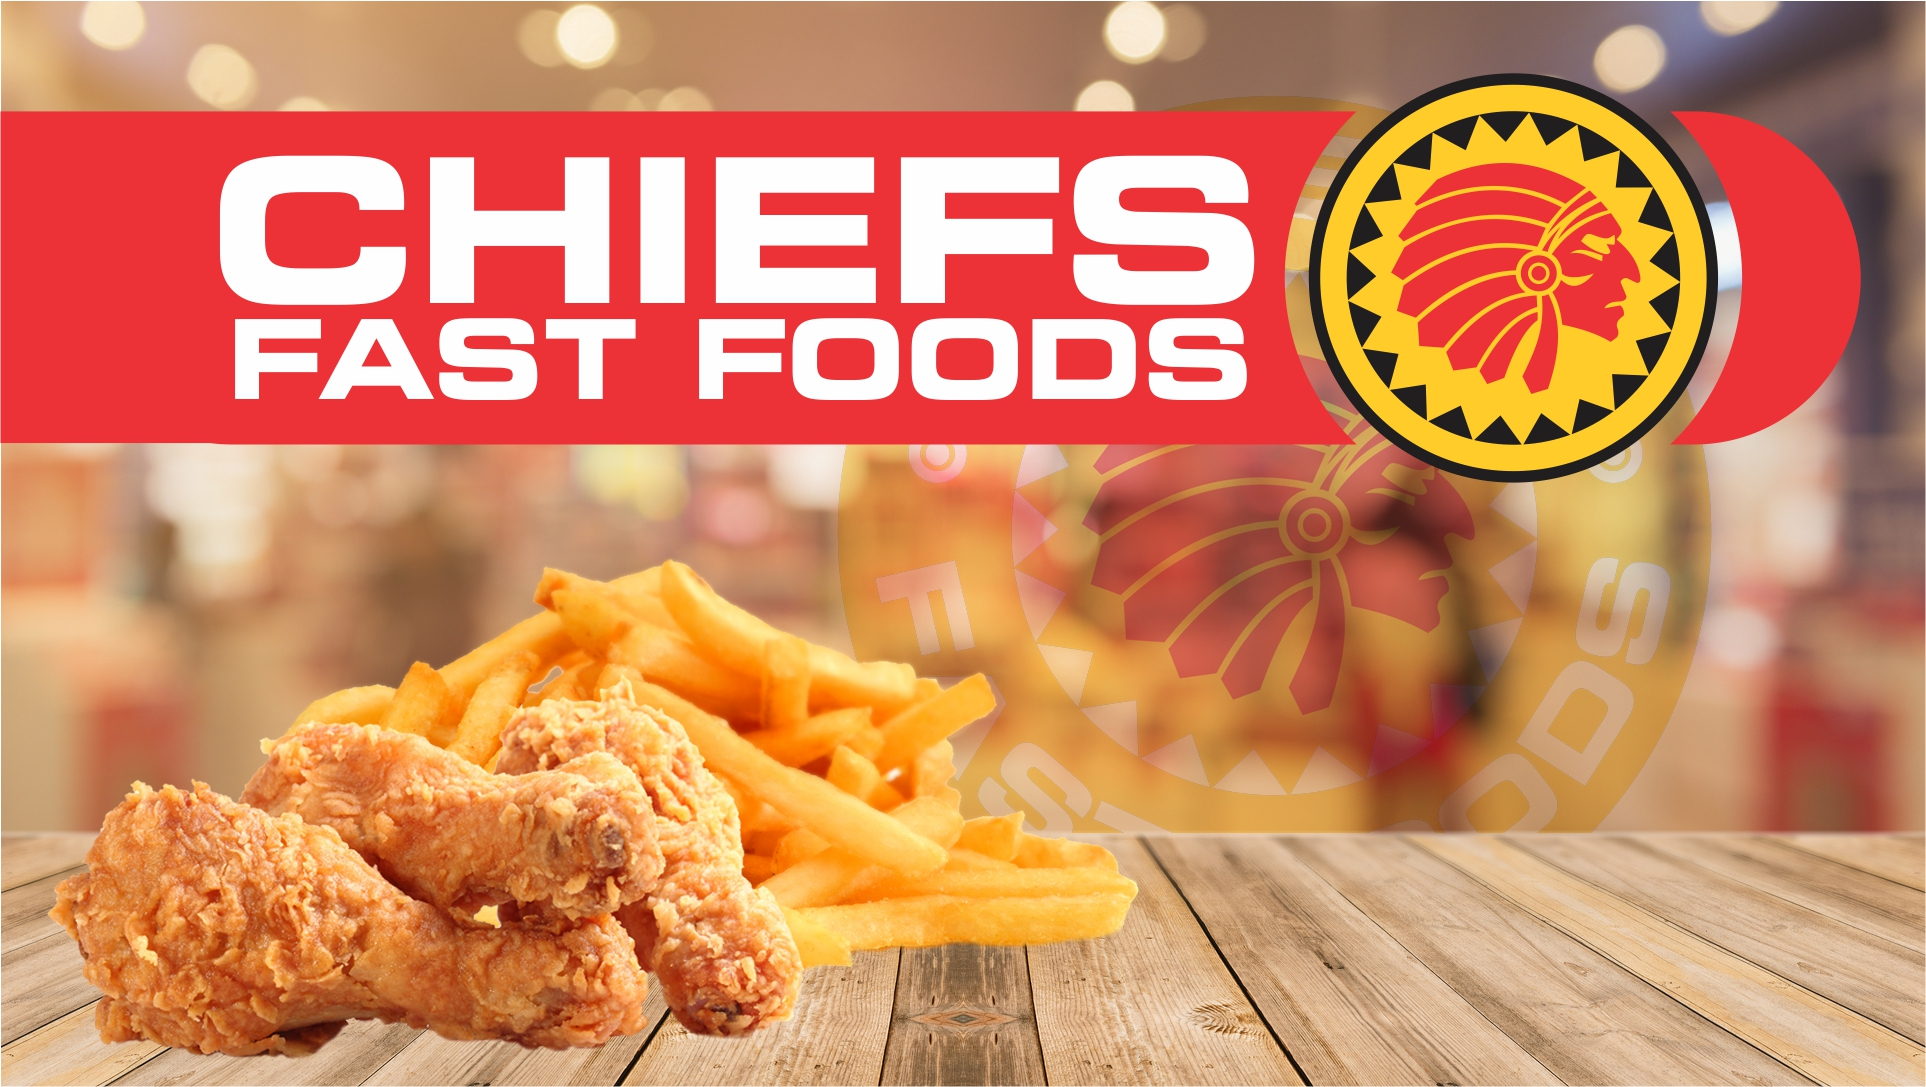 CHIEF FAST FOOD FRANCHISE